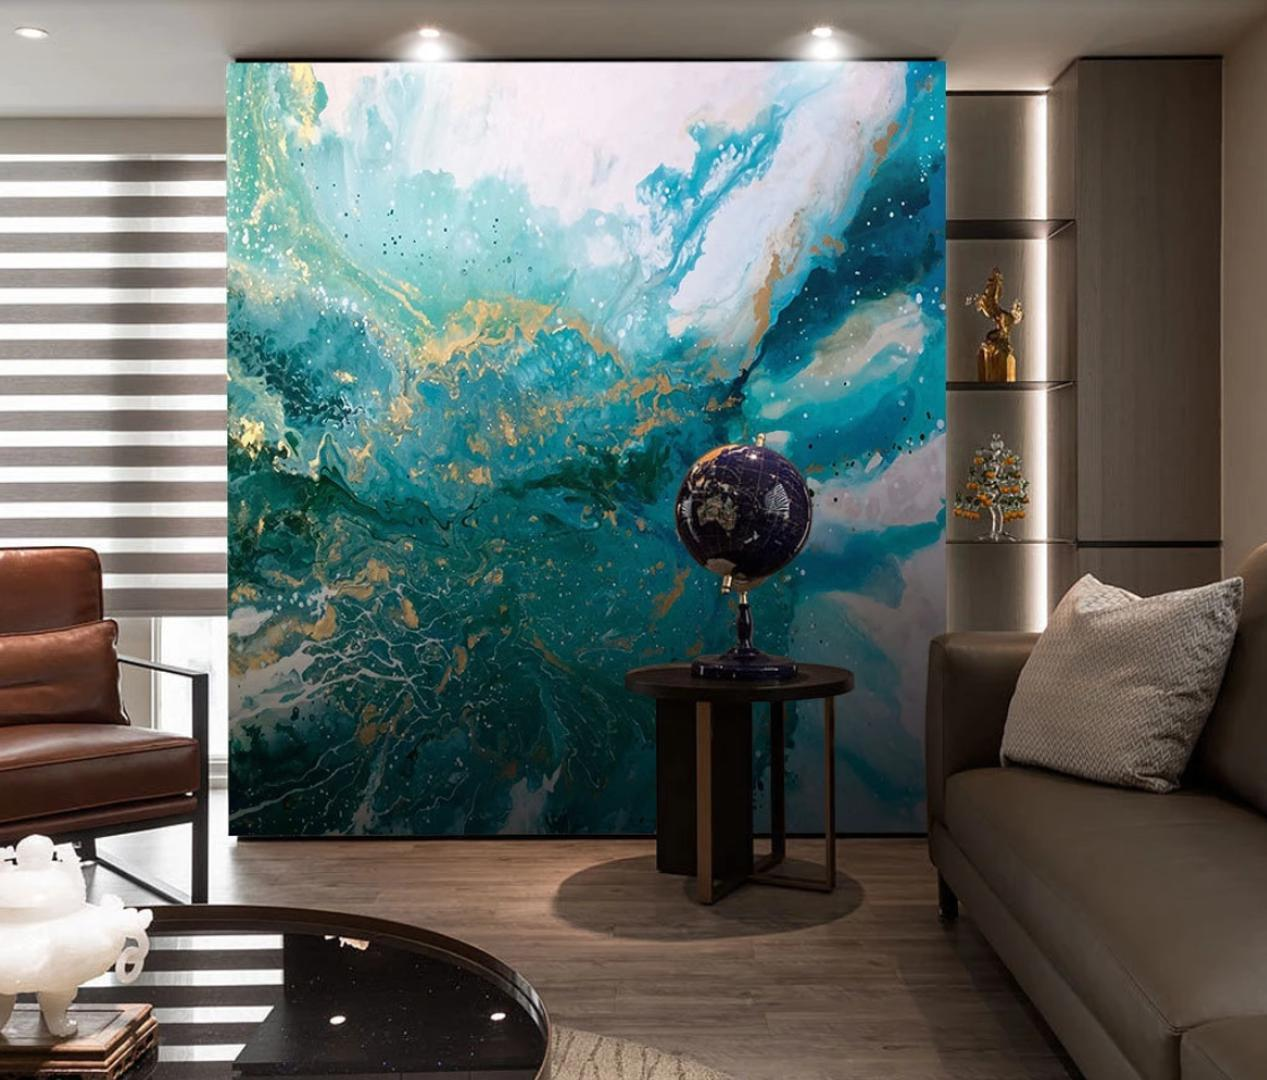 3d Blue Marble Wallpaper Wall Mura Custom Photo Wall Papers For Living Room Waterproof Canvas Contact Paper Wedding Decoracion Hd Wallpapers Hd Wallpapers 4 Free From Griffith 26 57 Dhgate Com